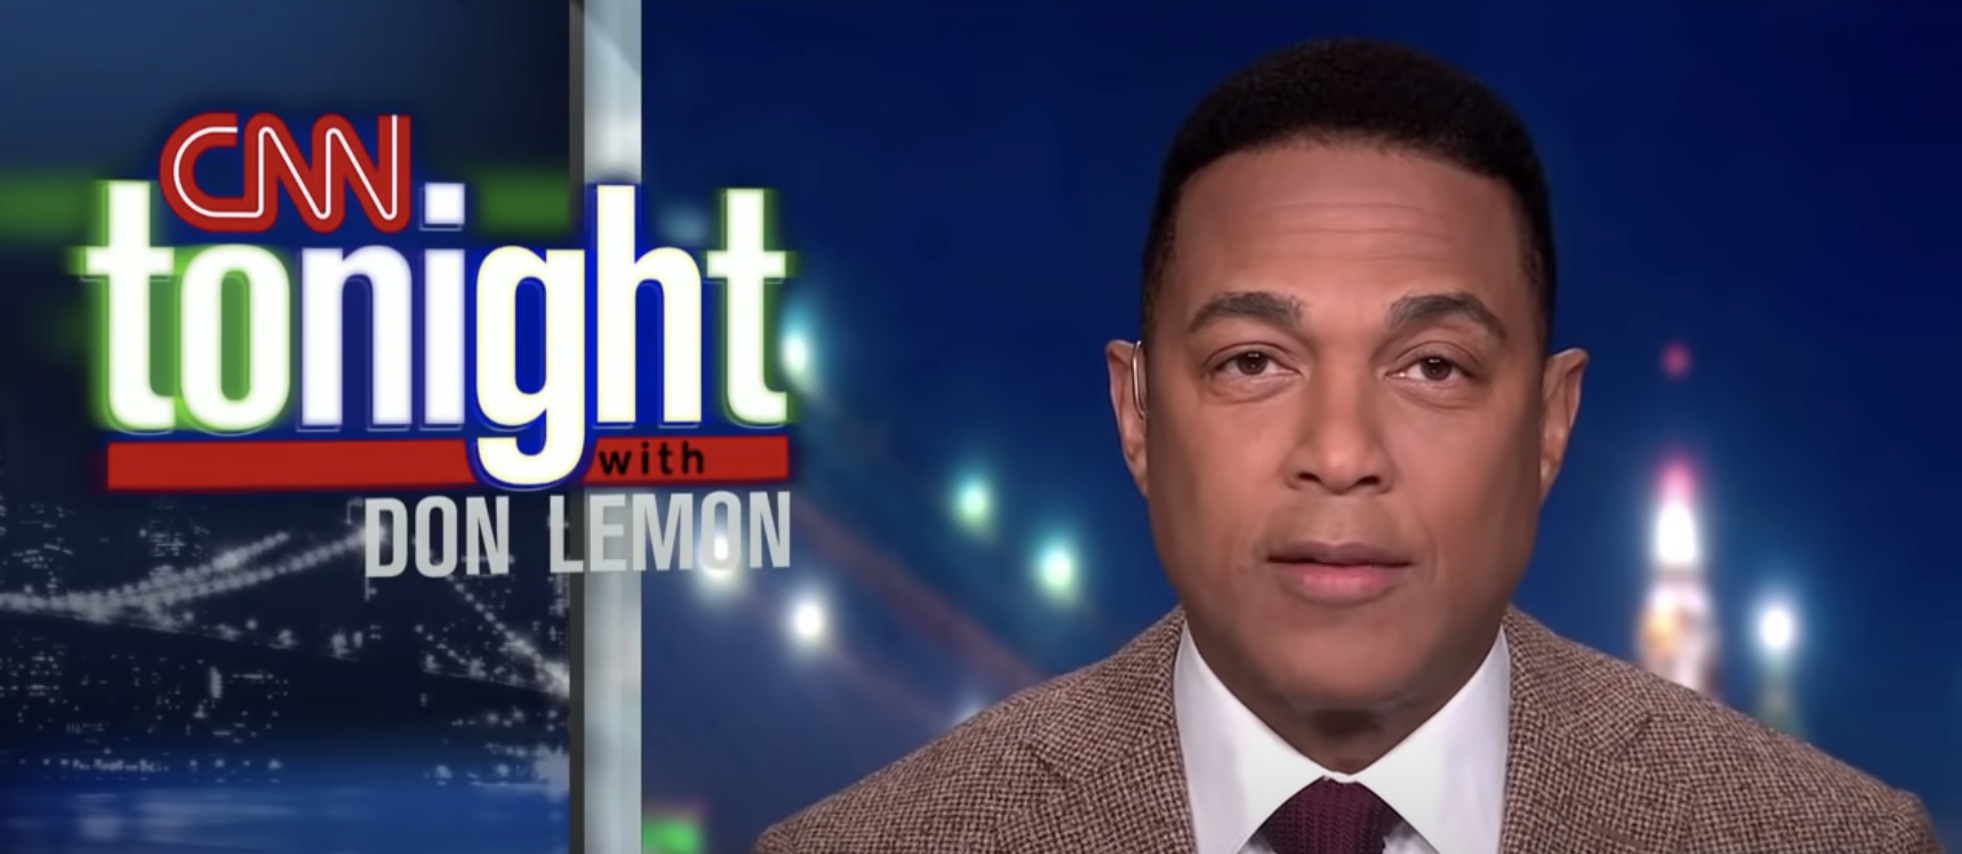 Don Lemon Gets It Right for Once | The American Spectator | USA News and PoliticsThe American Spectator | USA News and Politics